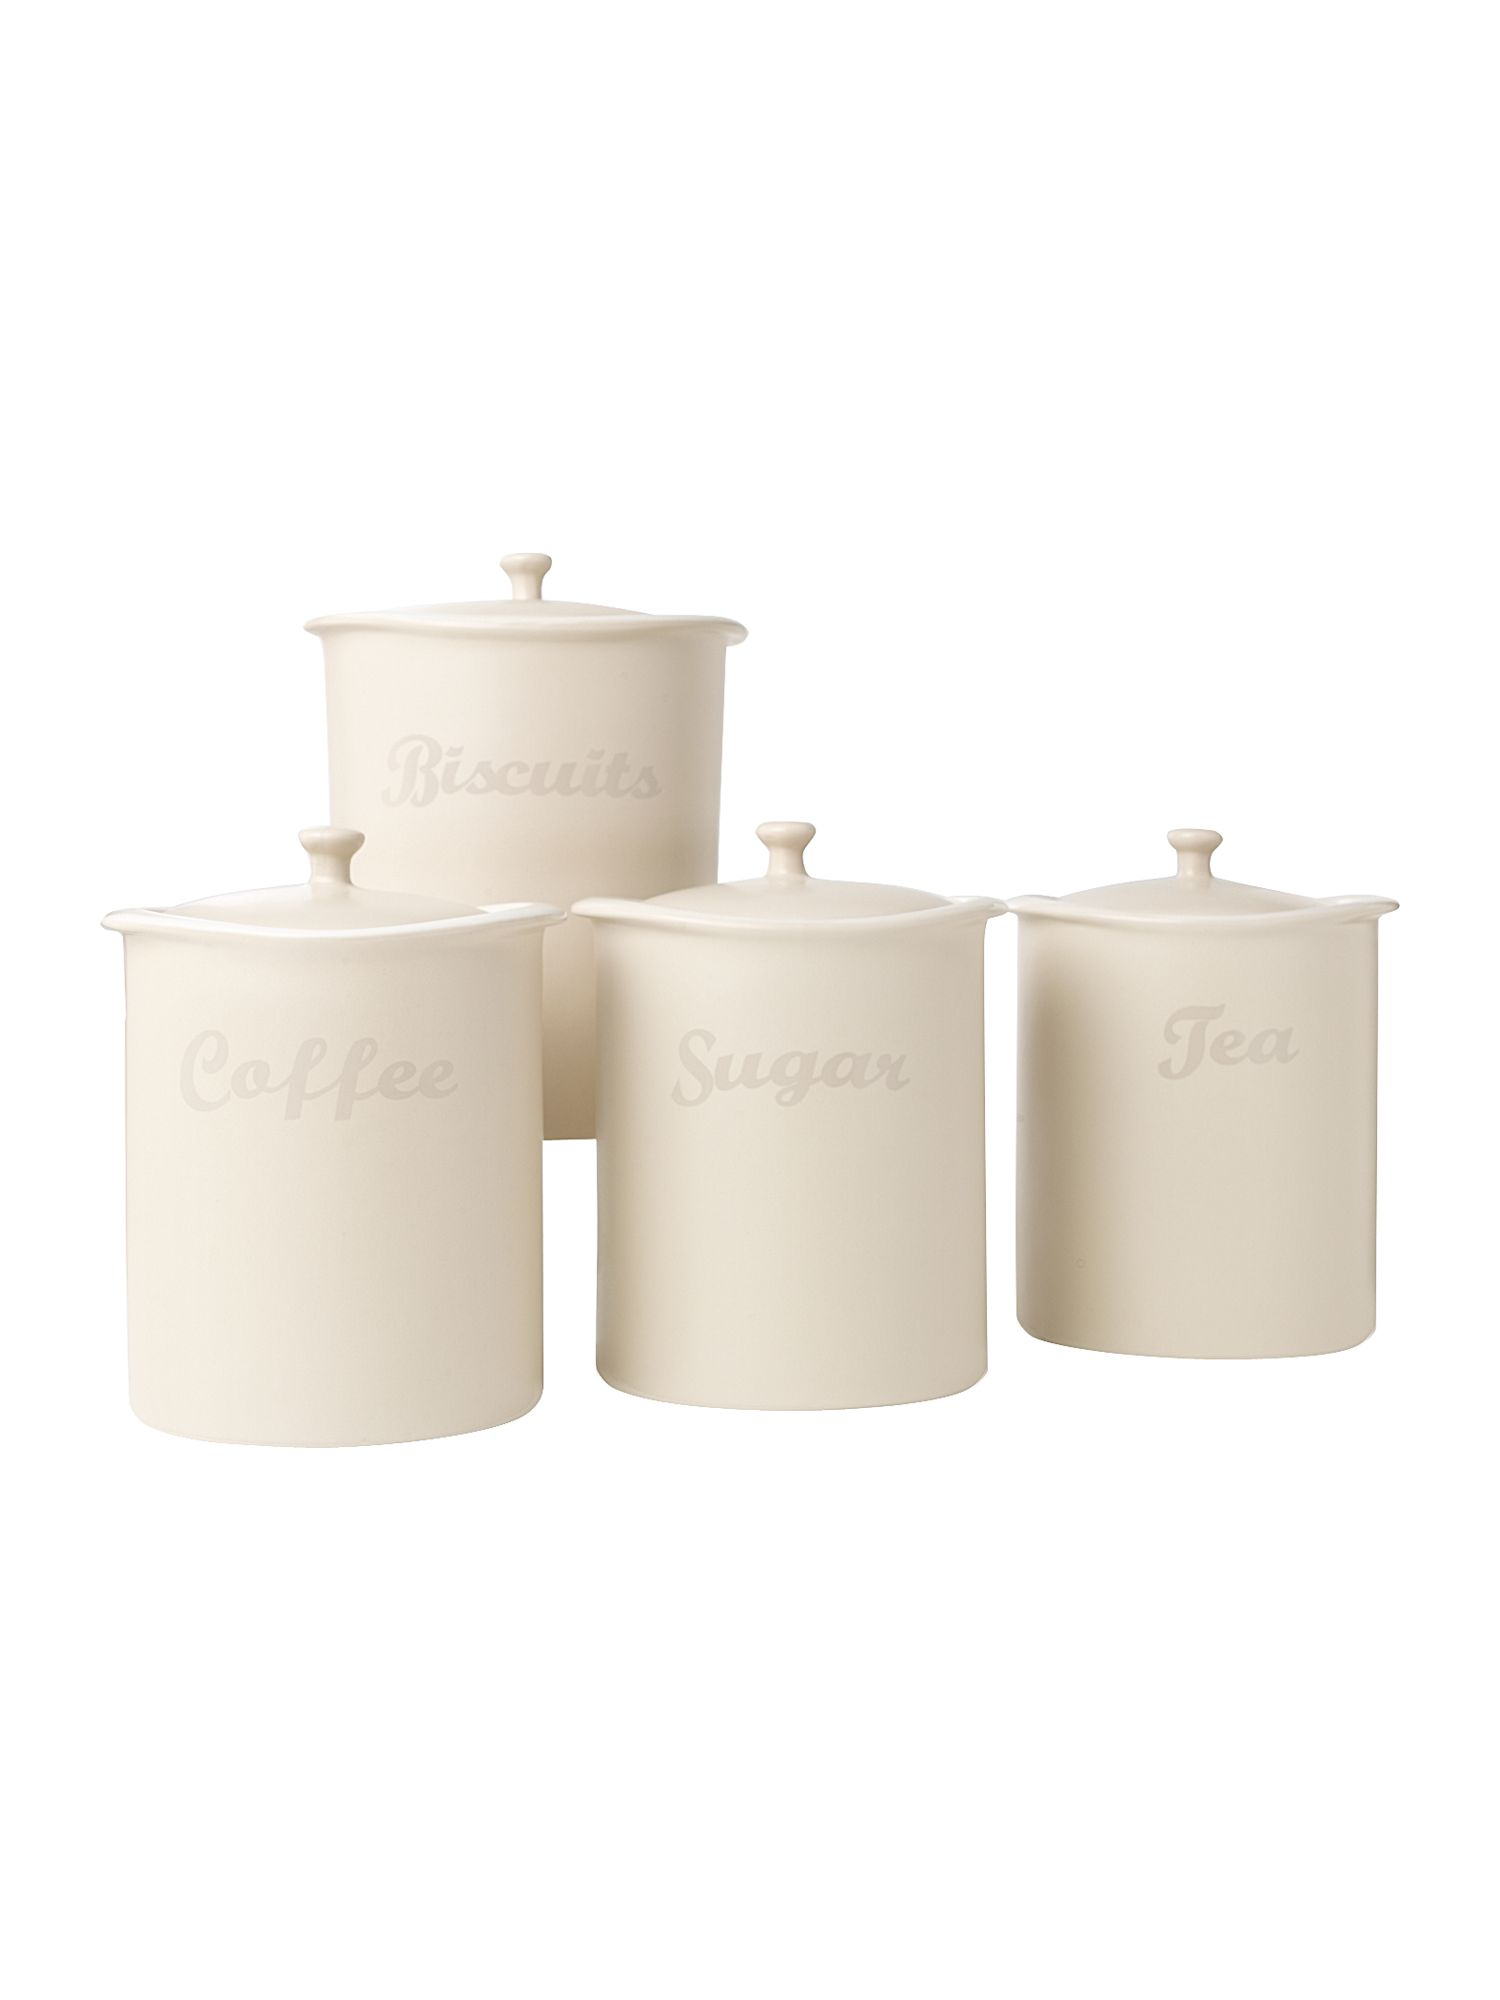 Curve cream storage